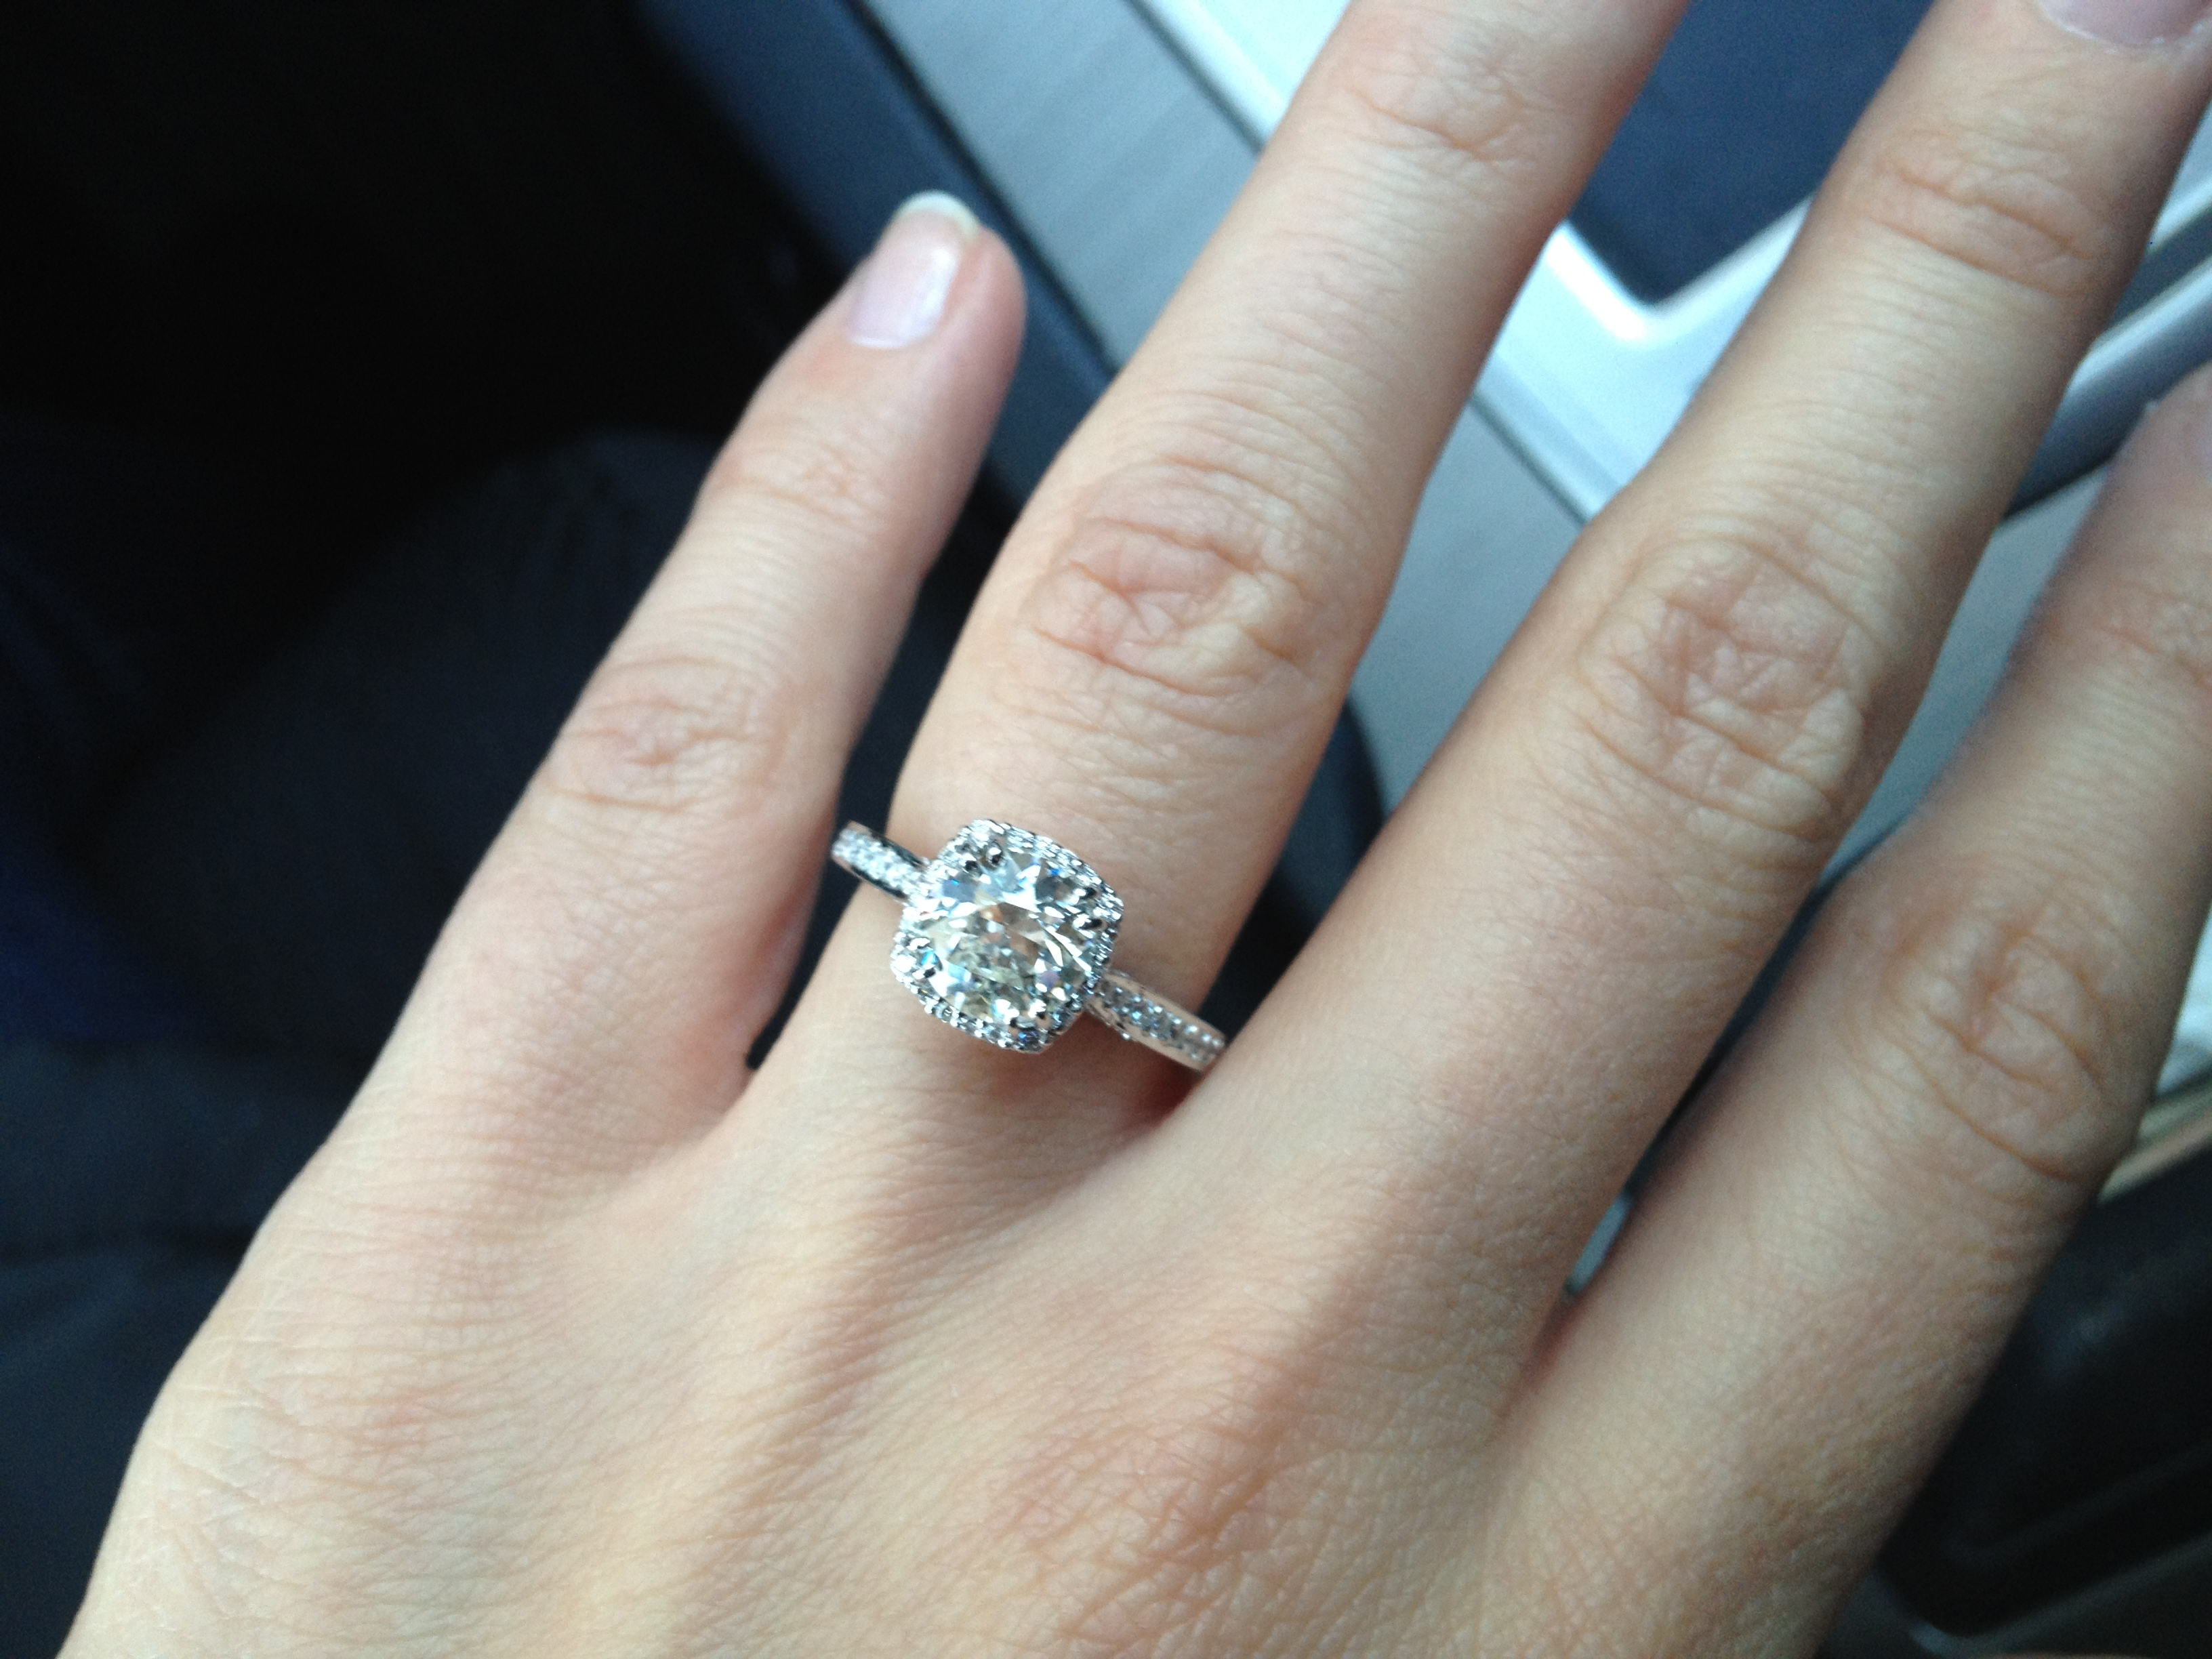 the story behind the left hand ring finger verragio wedding band